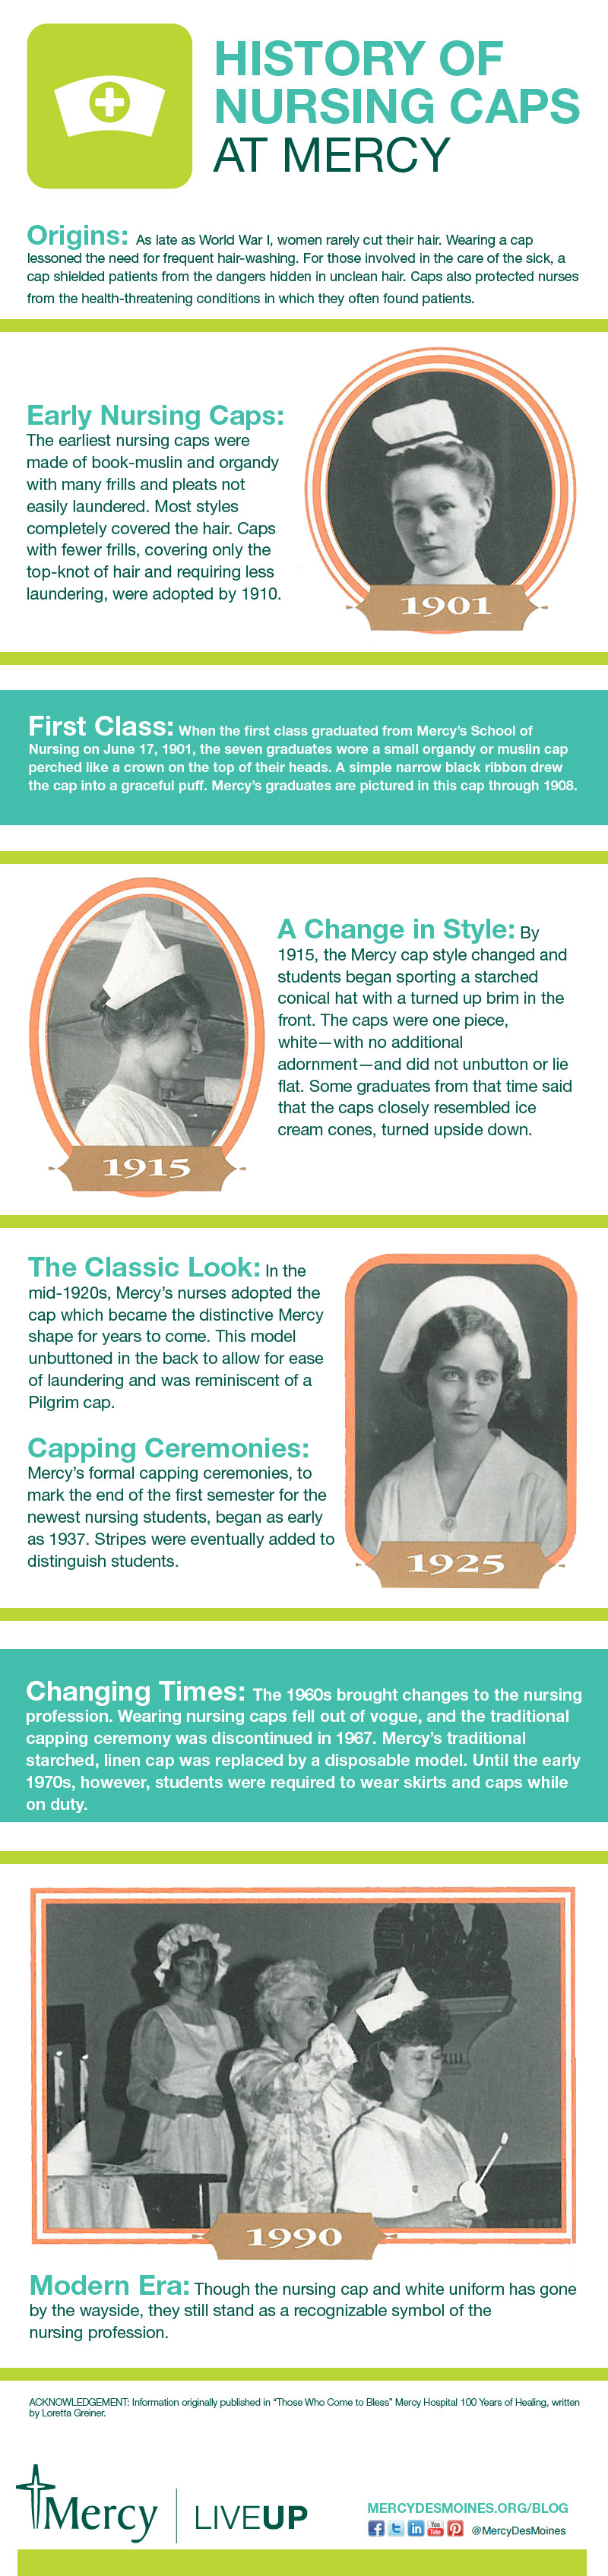 History Of Nursing Caps At Mercy Infographic